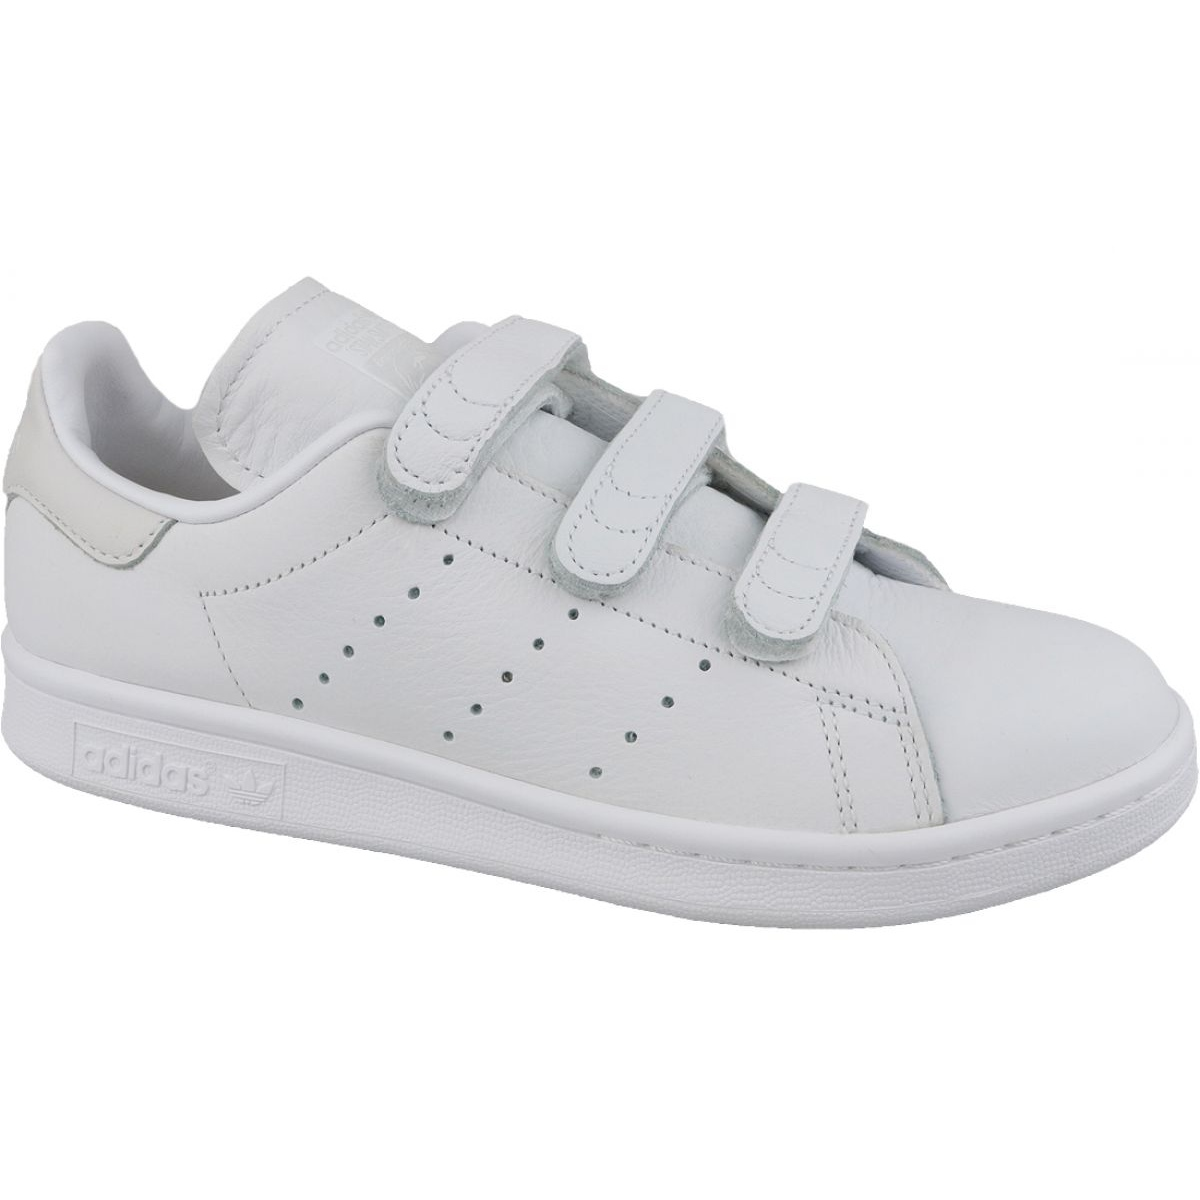 Weiß Adidas Originals Stan Smith Schuhe in CQ2632